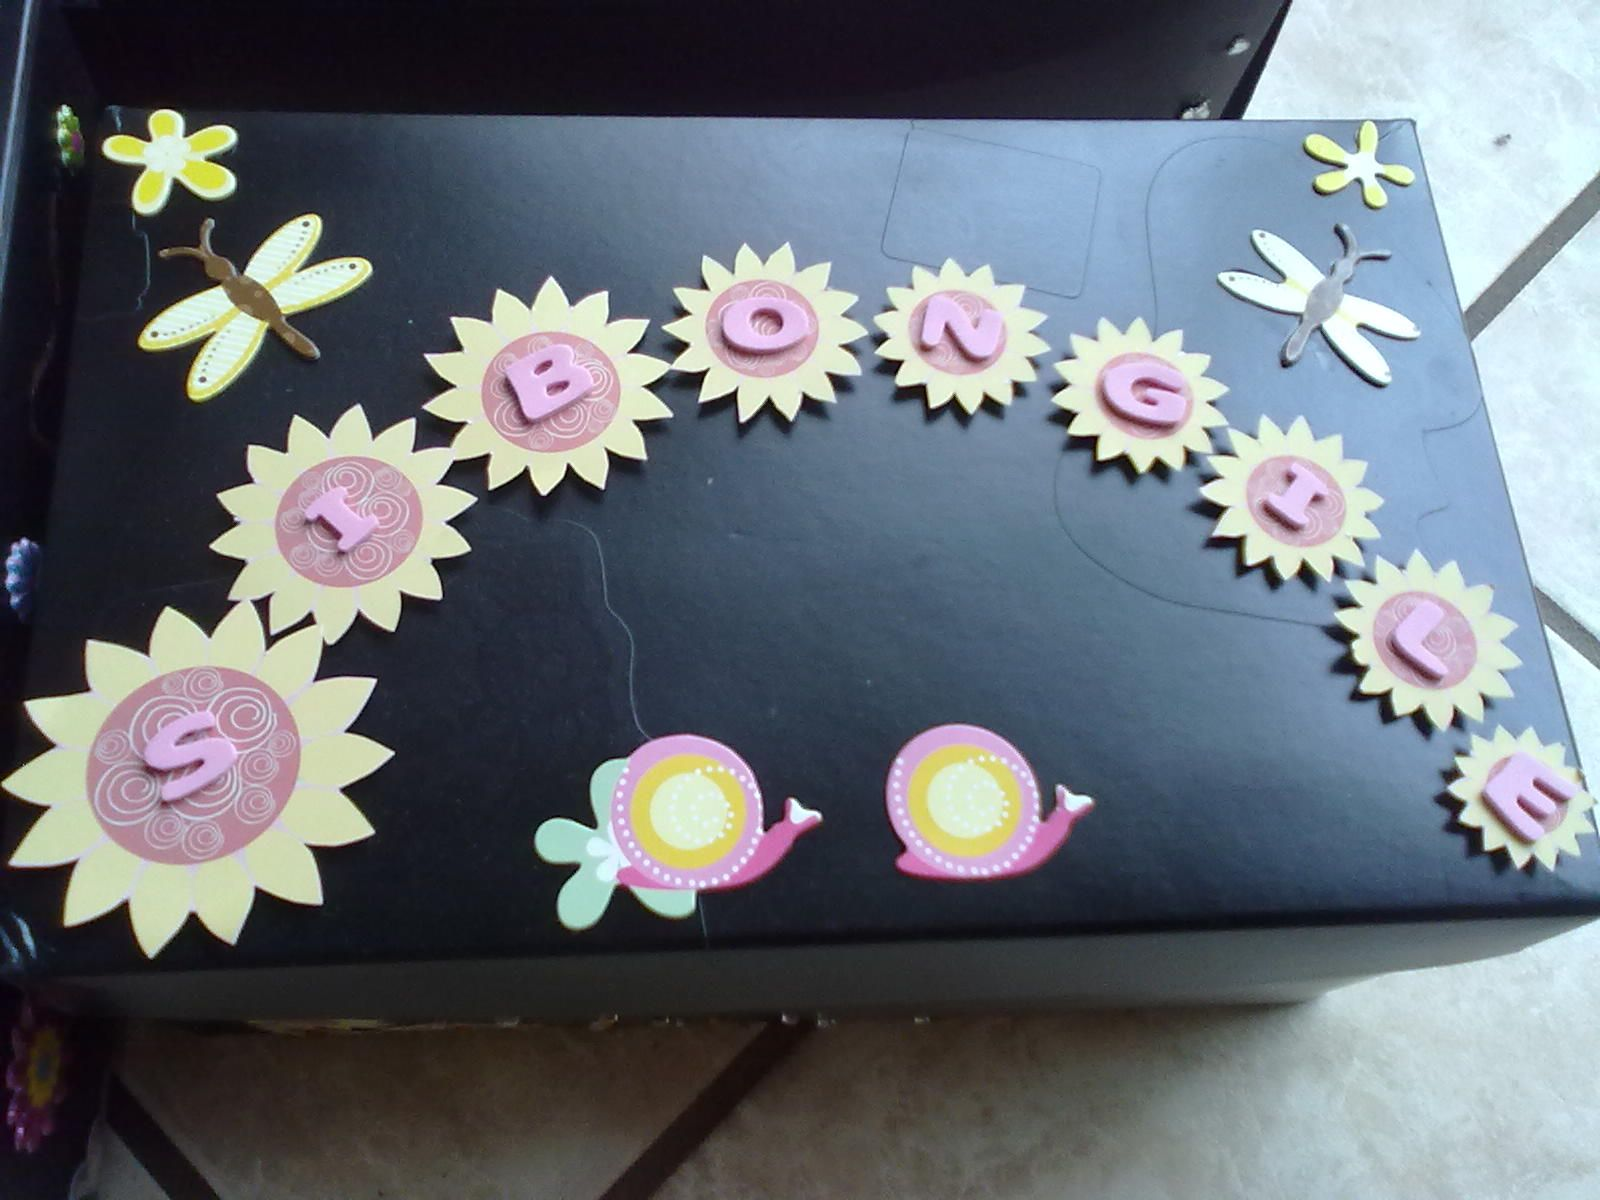 Decorate Shoe Box Ways To Decorate Shoe Boxes  Selfdecorated Shoe Boxme Likes